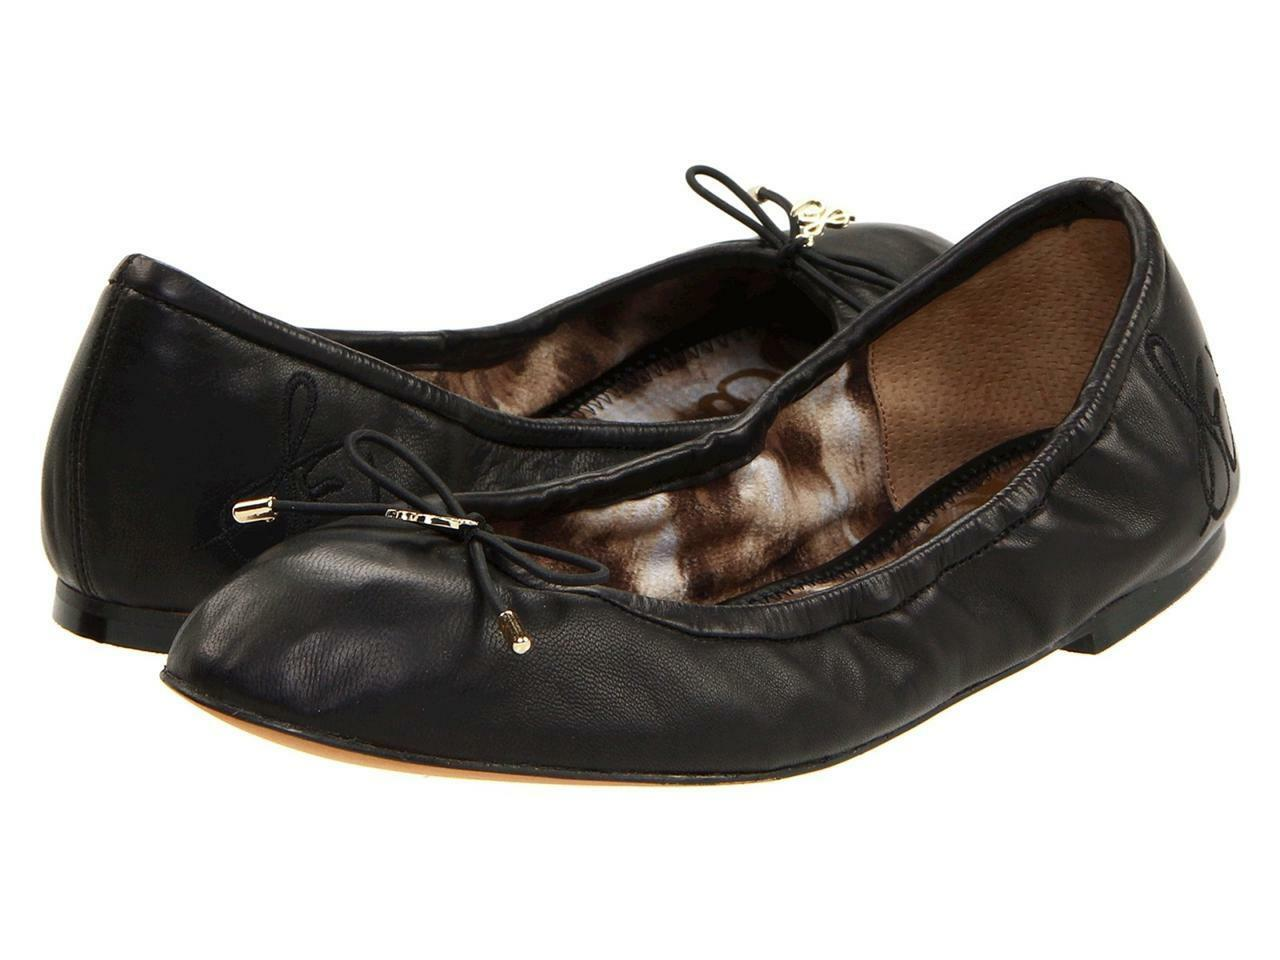 profitto zero Sam Edelman Felicia Ballet Flat Flat Flat nero Leather Easy slip-on wear elasticized New  alta qualità genuina